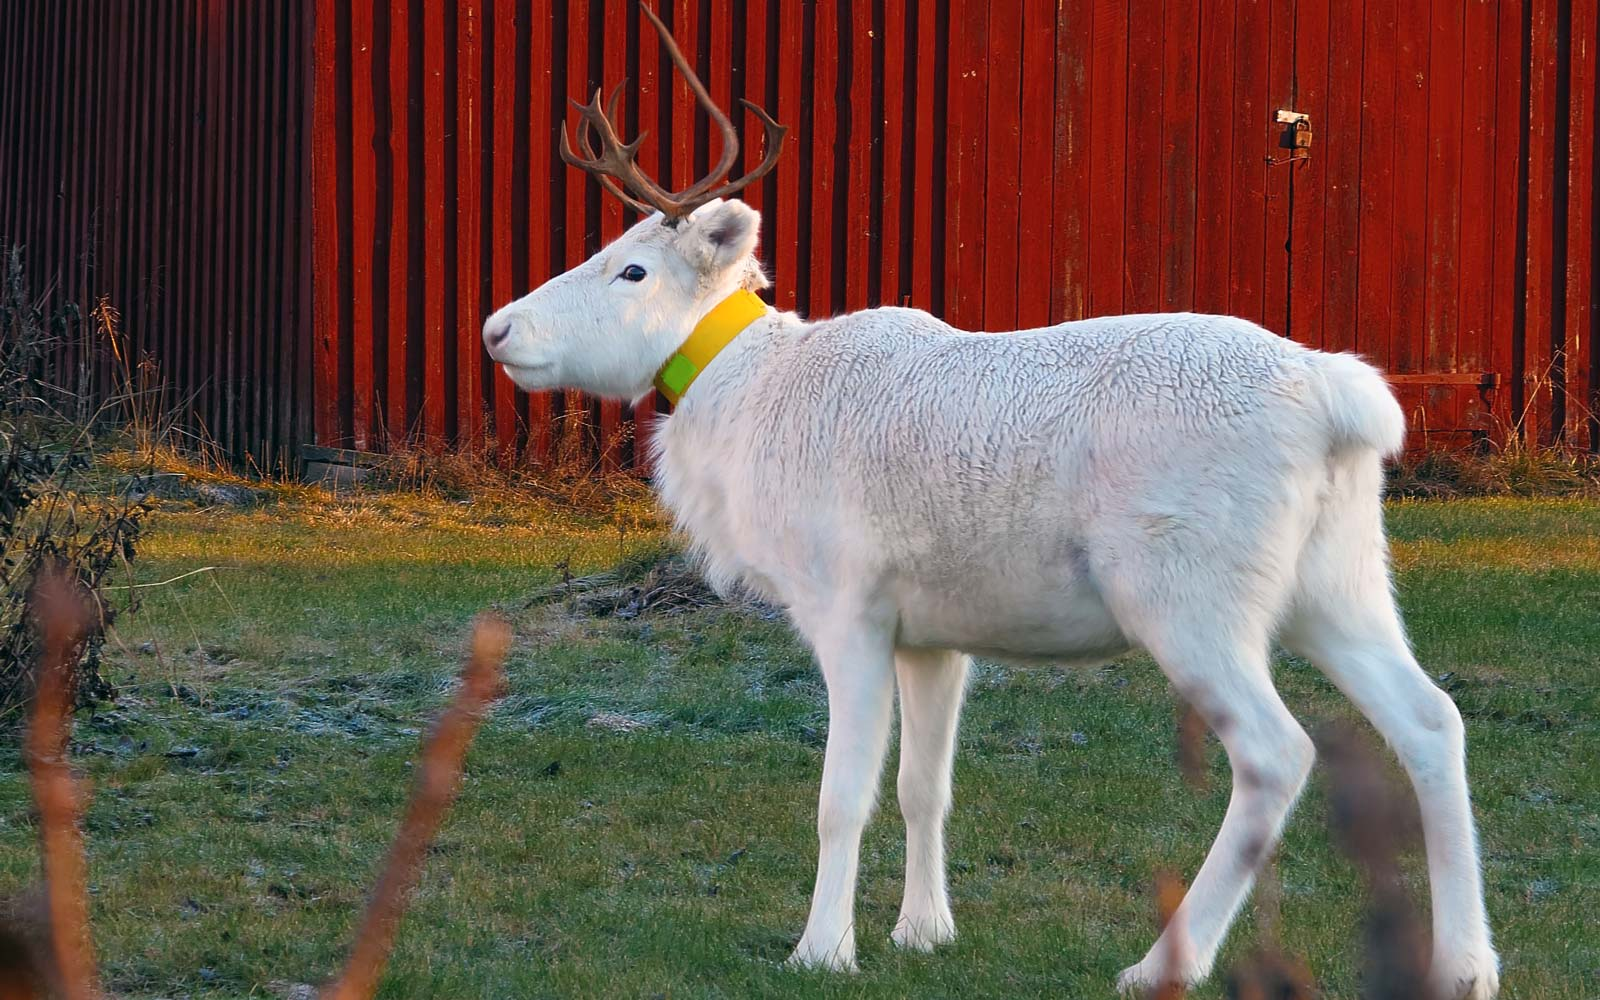 White Reindeer calf at a red painted barn